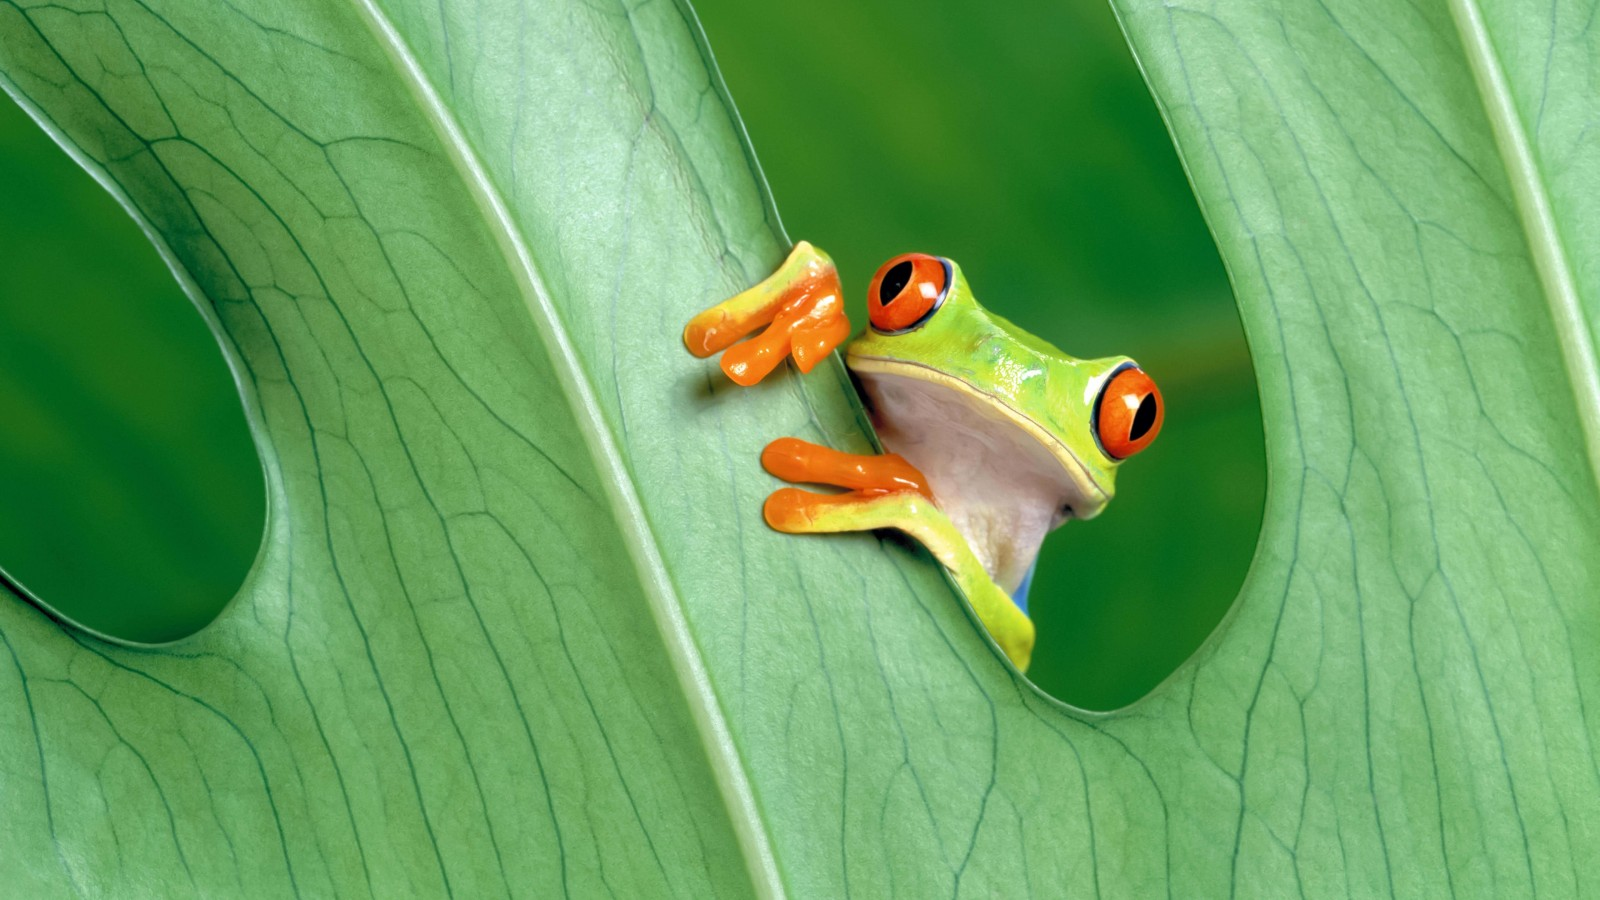 Red Eyed Tree Frog Wallpaper for Desktop 1600x900